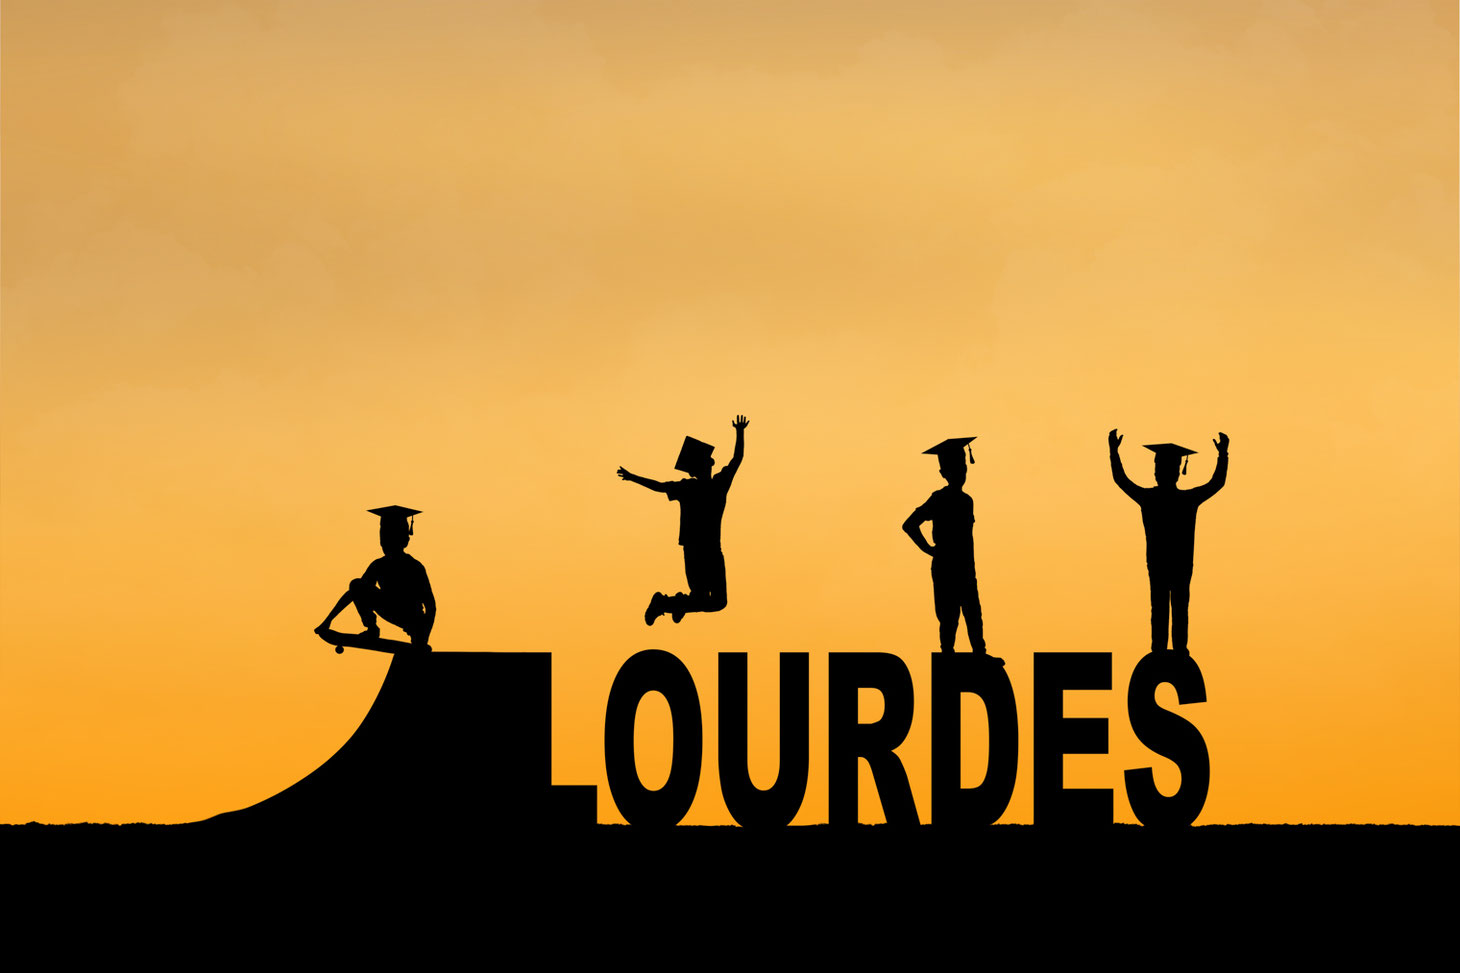 silhouettes of 4 boys in grad caps on top of the letters lourdes. The sky is orange. There is a skateboard ramp next to the L